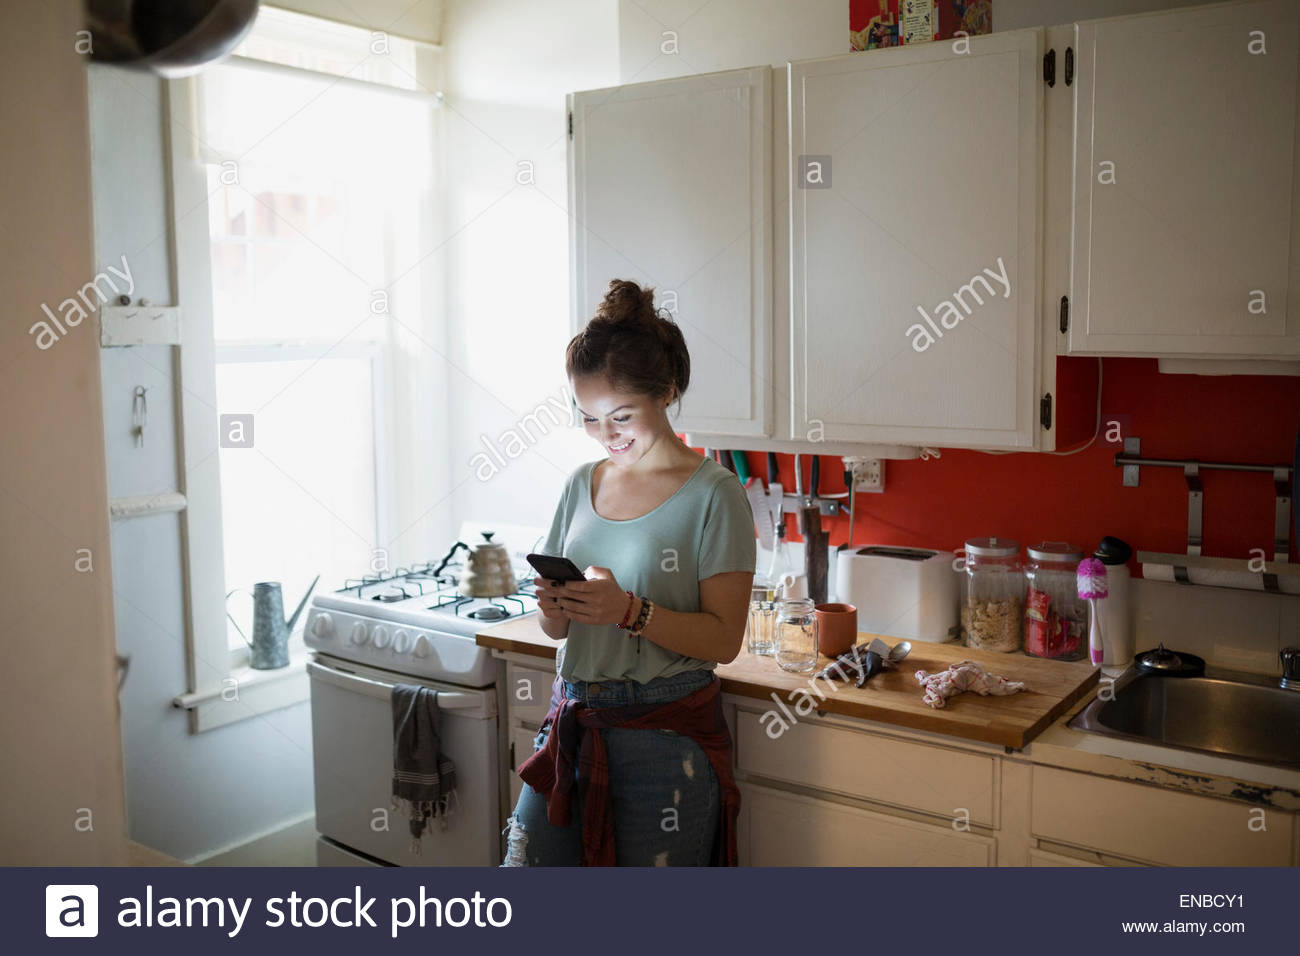 Smiling woman texting with cell phone in kitchen - Stock Image